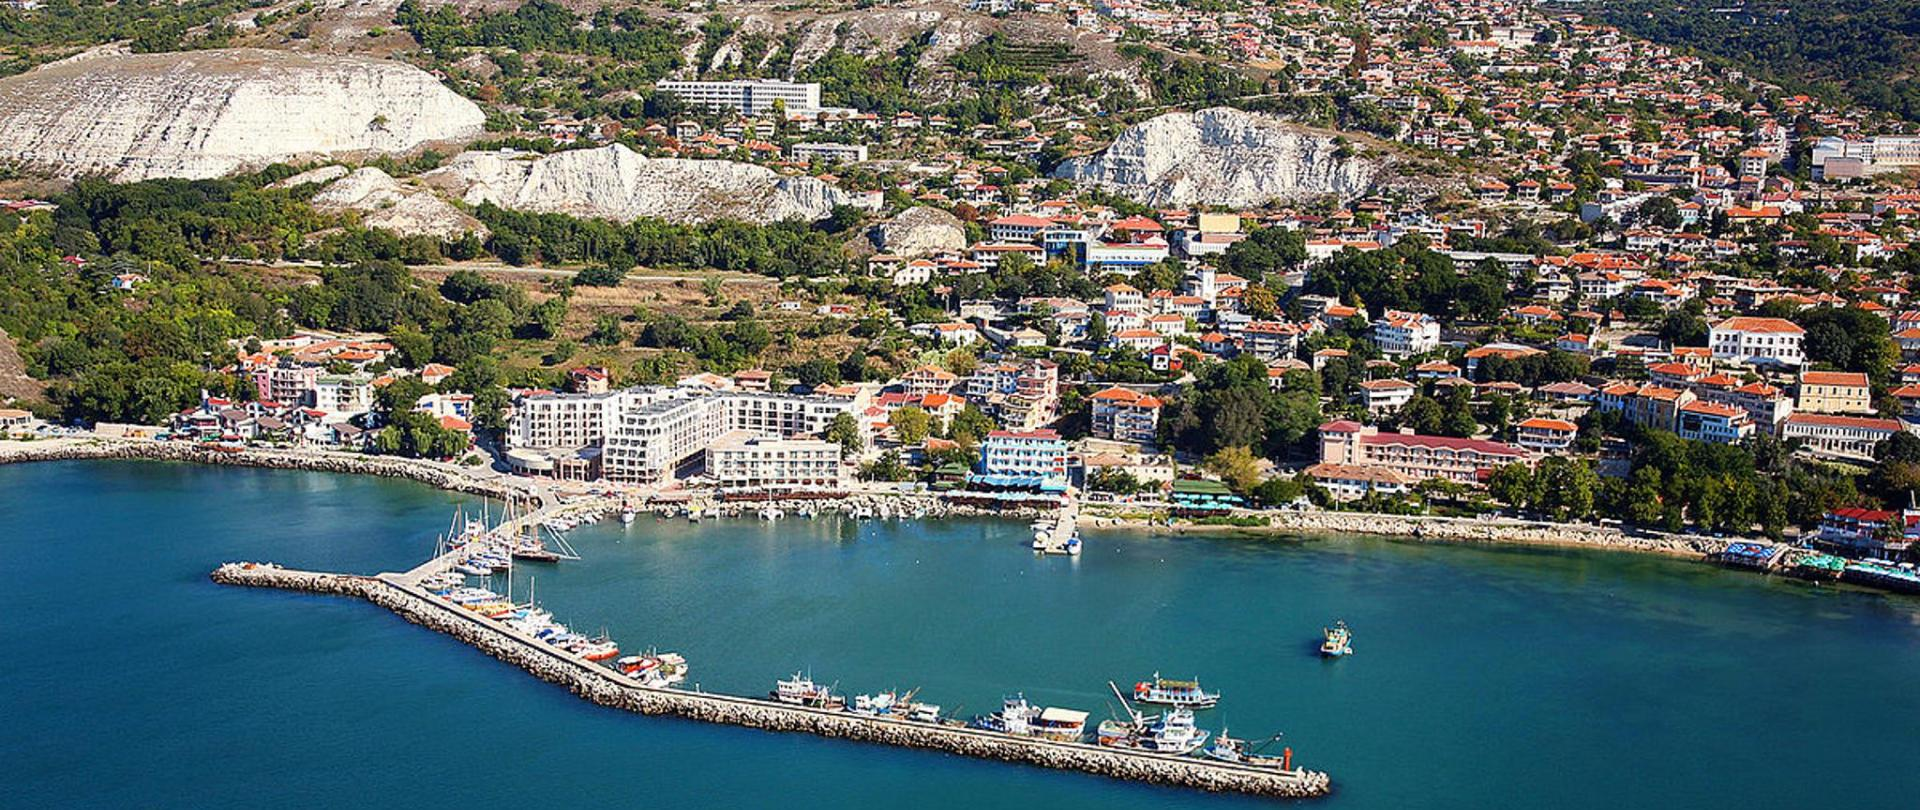 1200px-Balchik_Bulgaria_aerial_photo_from_the_Black_Sea.jpg